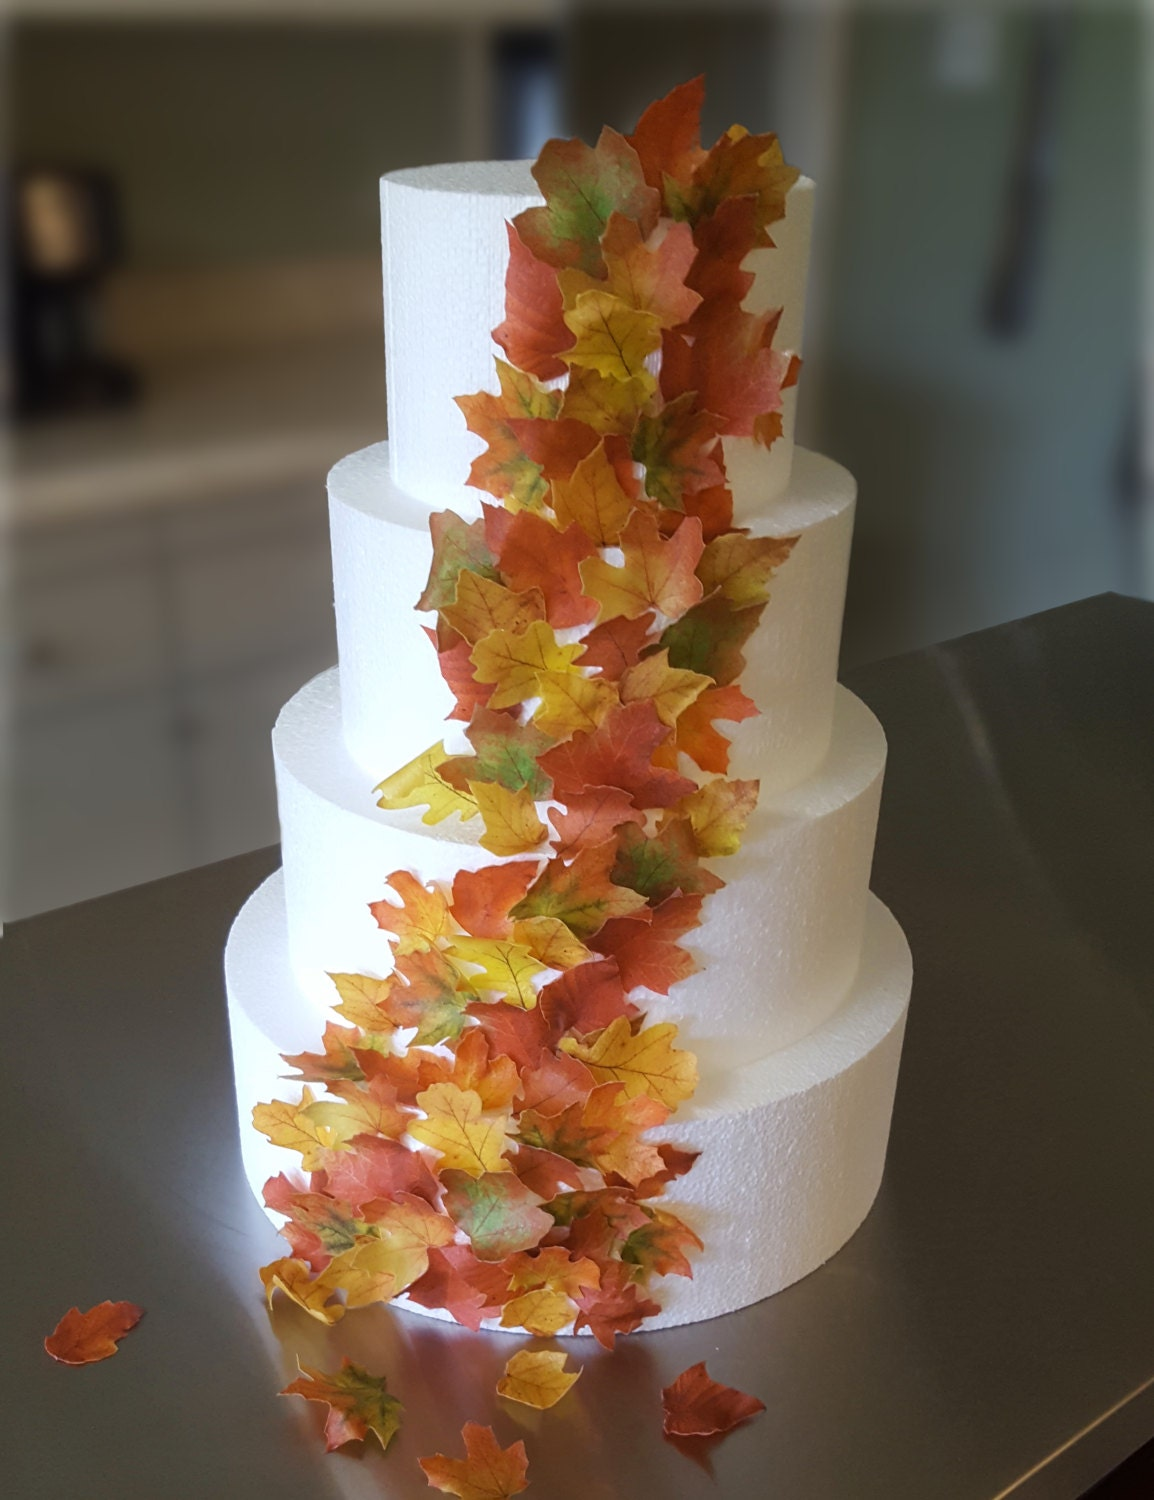 edible wedding cake decorations 2 edible cake decorations fall leaves wafer paper toppers for 3832